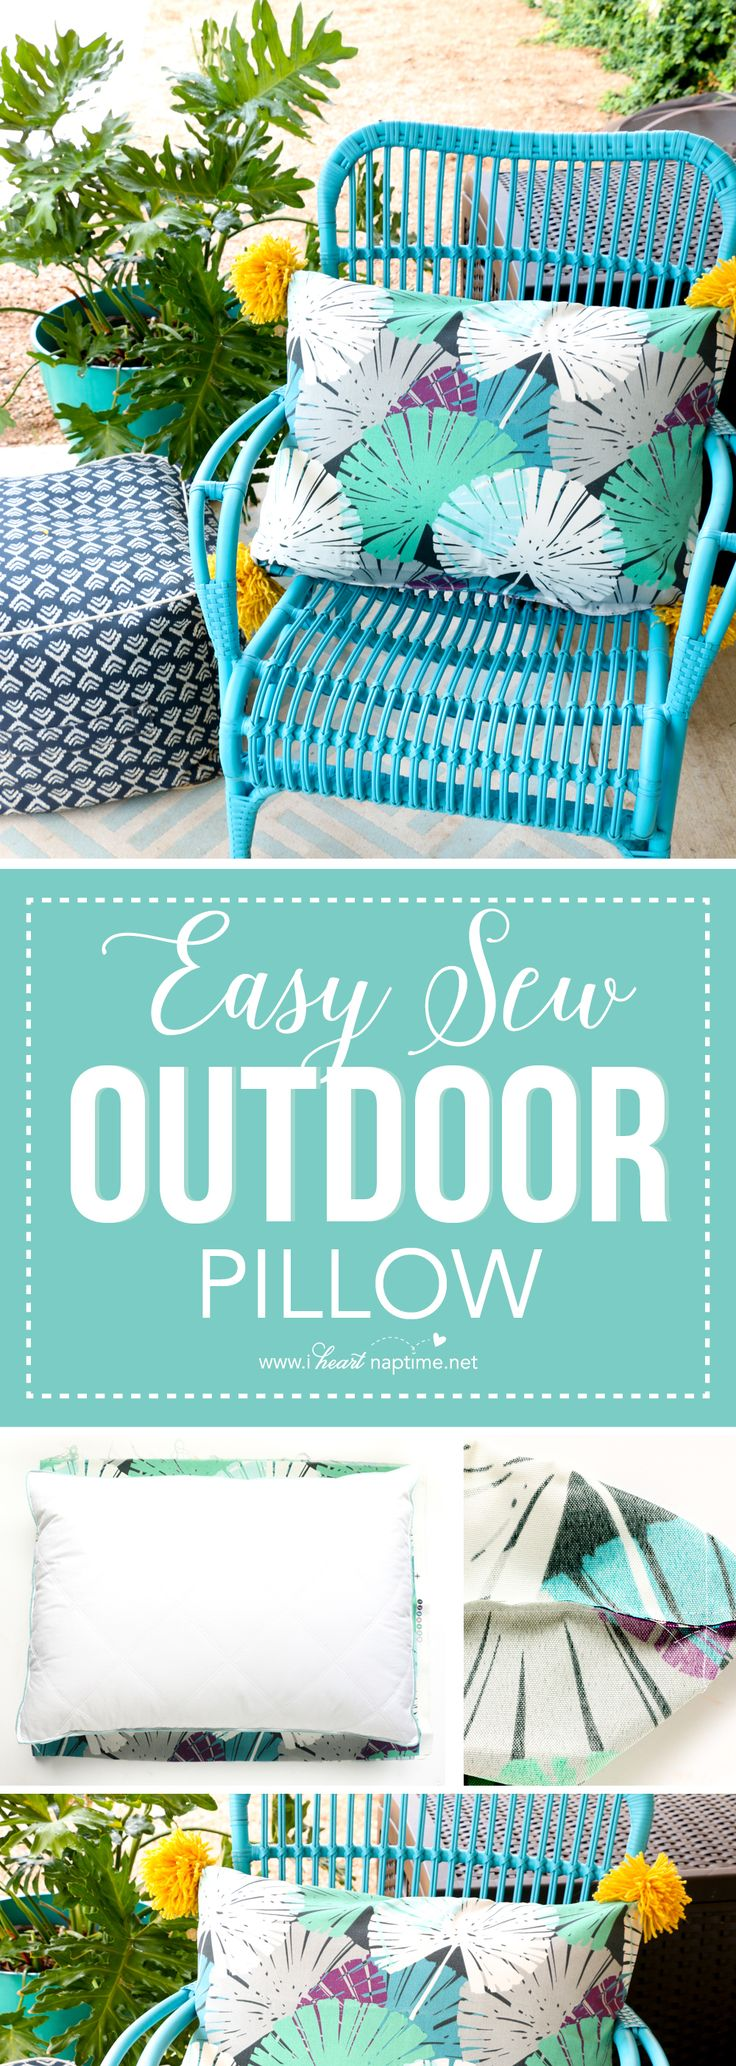 Easy sew outdoor pillow u2013 Learn how